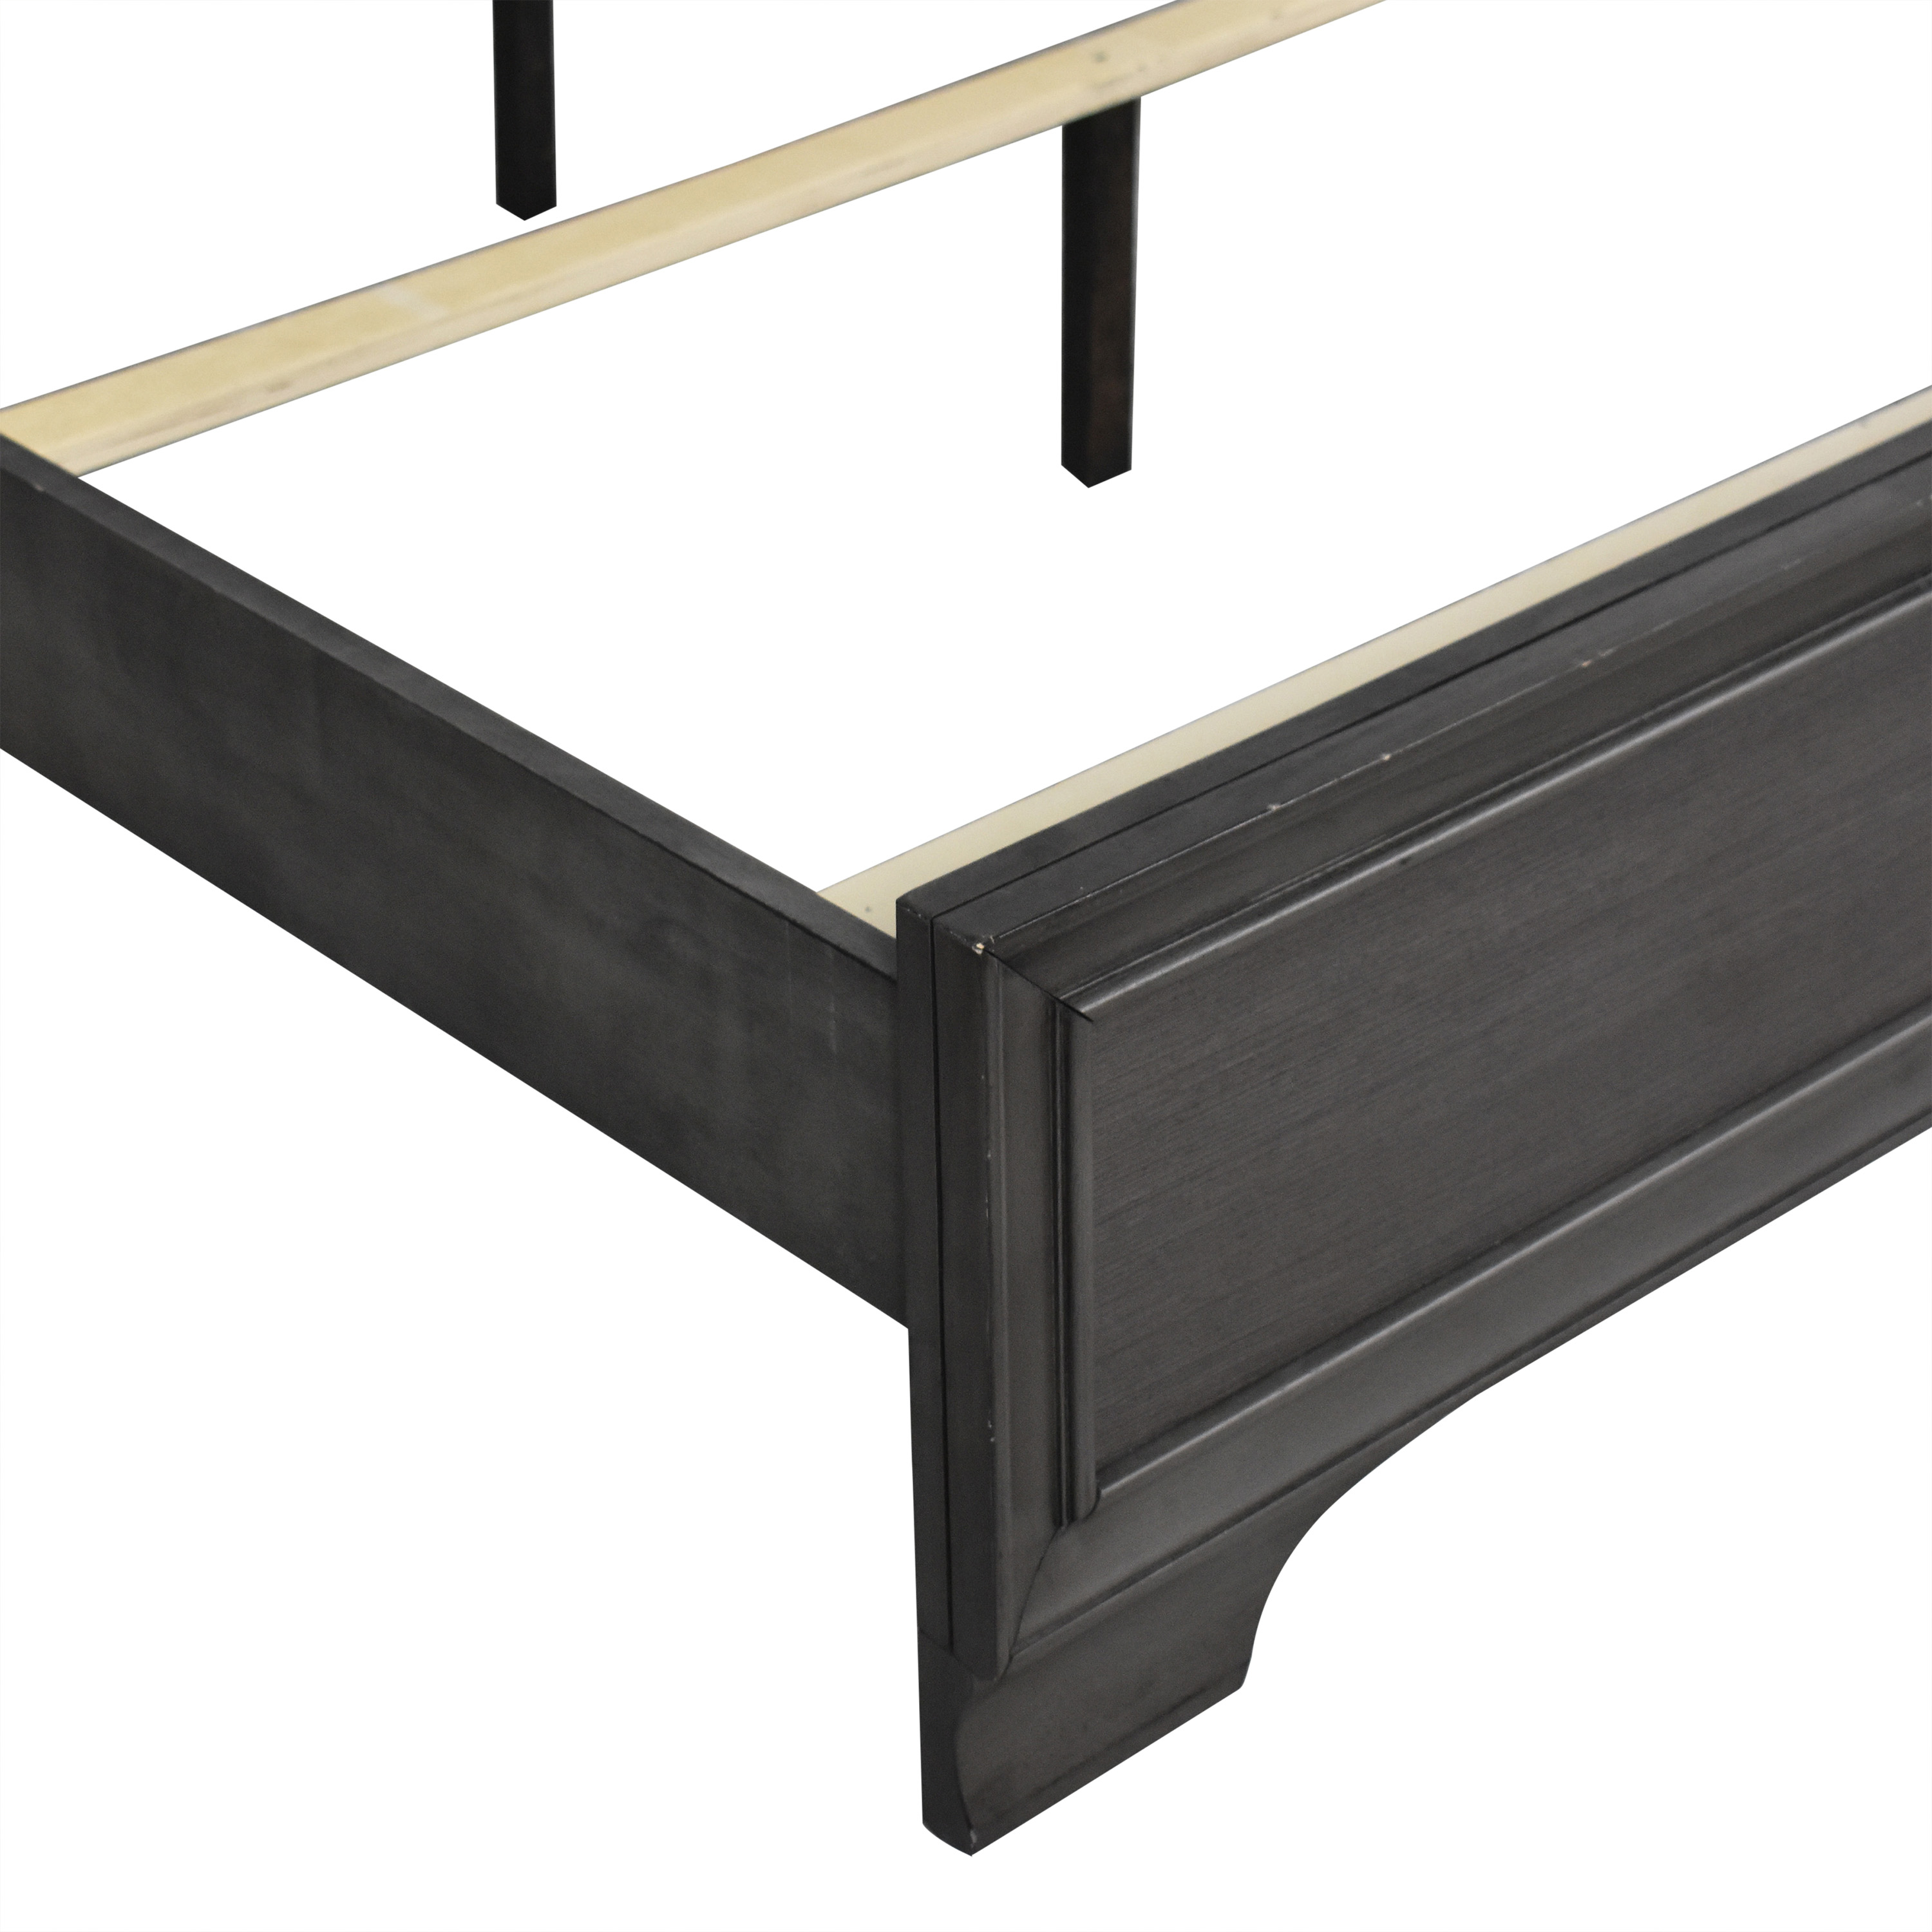 Upholsted Queen Bed Frame ct